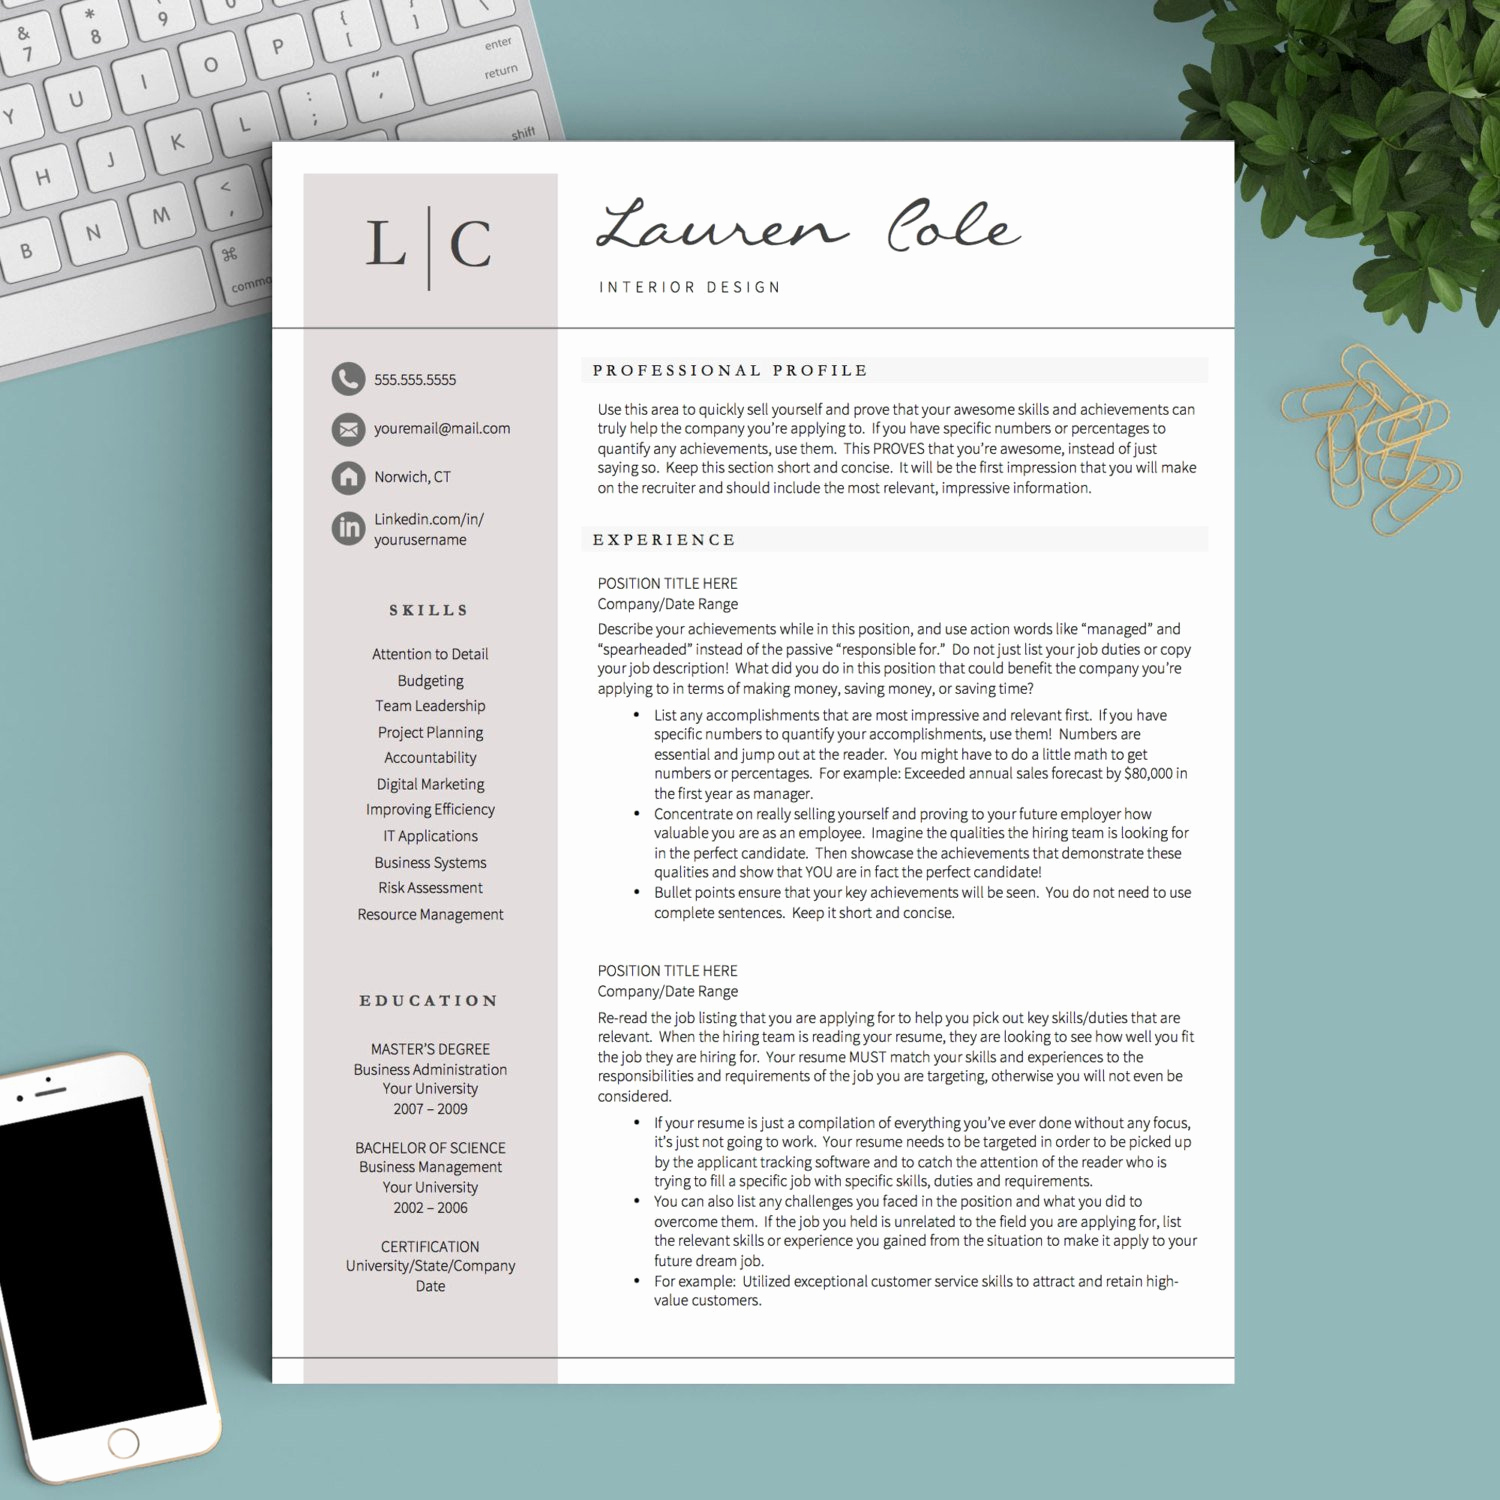 Creative Resume Template Word New Creative Resume Template for Word & Pages 1 2 and 3 Page